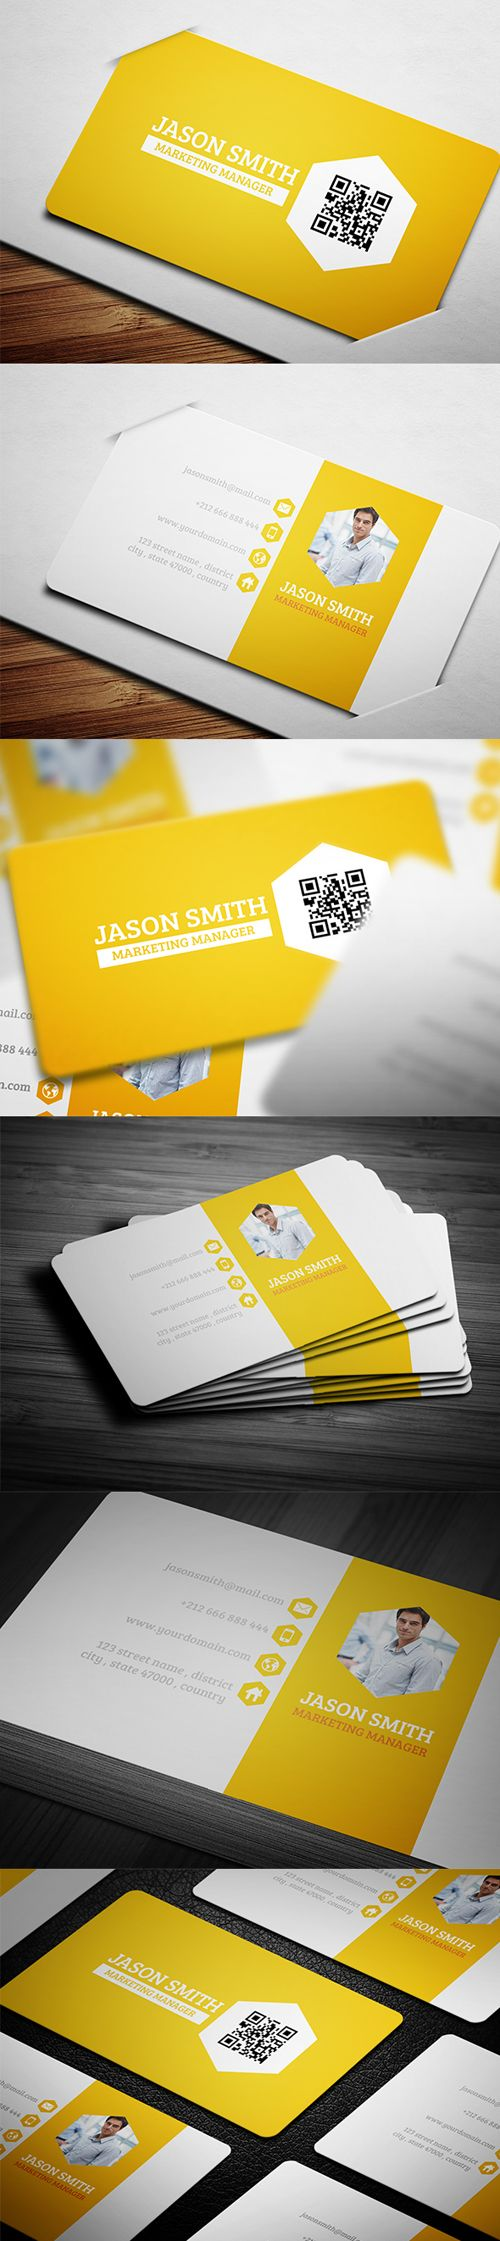 30 Free Modern Business Card Templates   Business cards, Card ...